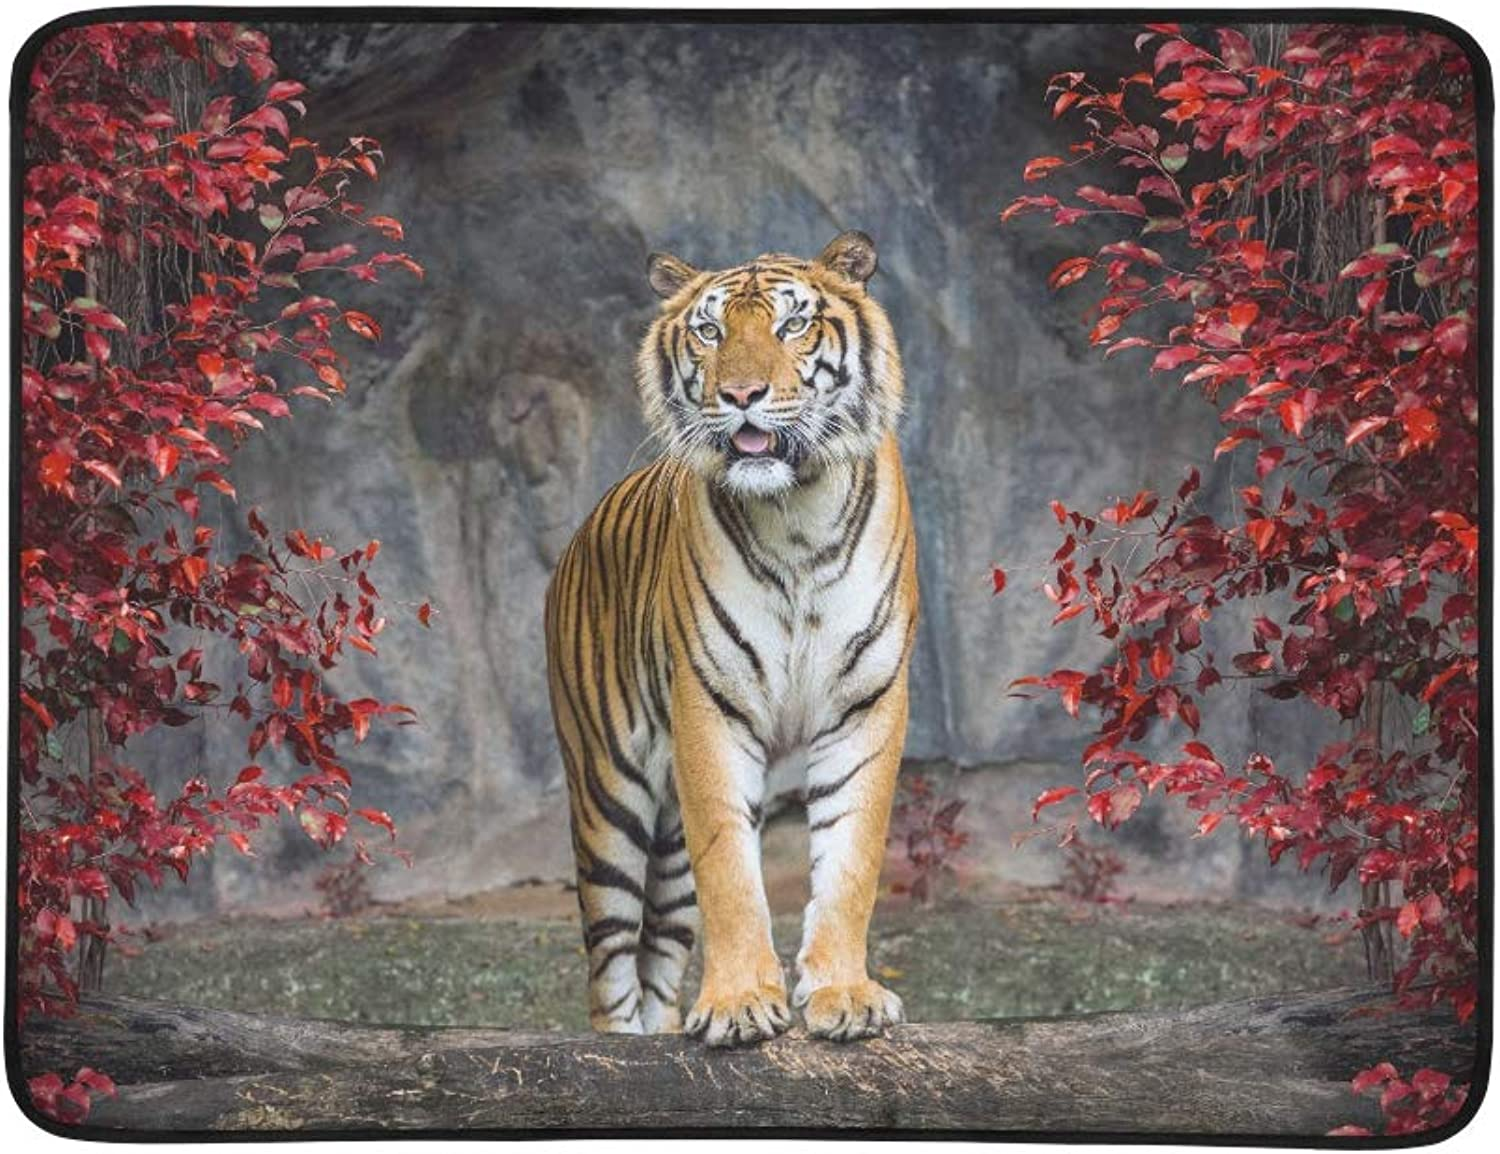 Wild Portrait Tiger in The Autumn Jungle Pattern Portable and Foldable Blanket Mat 60x78 Inch Handy Mat for Camping Picnic Beach Indoor Outdoor Travel